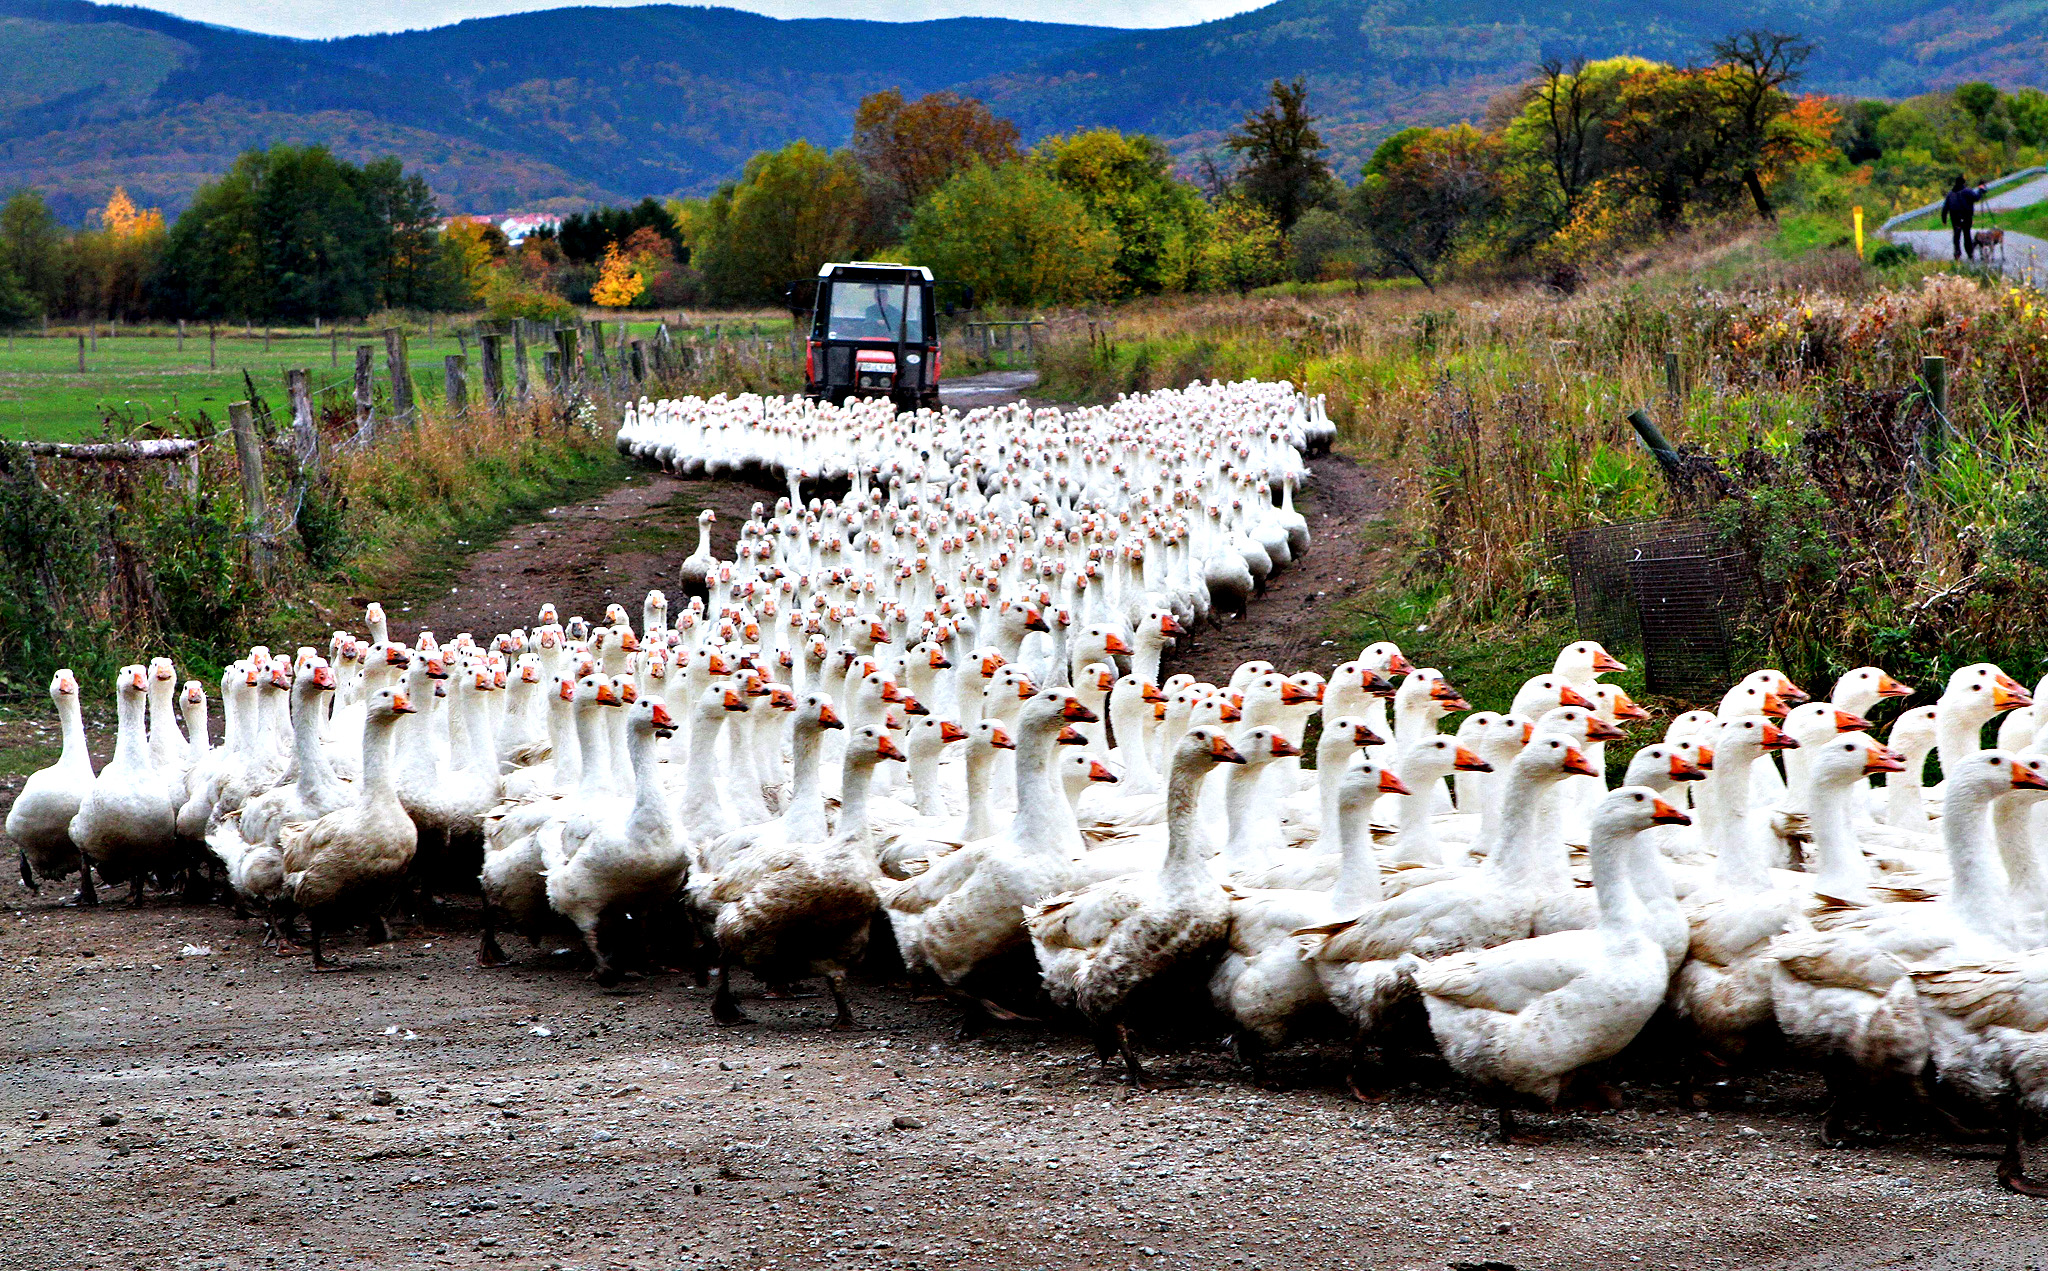 Geese of the Landi GmbH poultry farm are driven to their barn on October 21, 2013 in Veckenstedt, central Germany. The company brings up around 8,000 geese per year. Roast goose is a traditional dinner in Germany at Christmas and Martinmas.